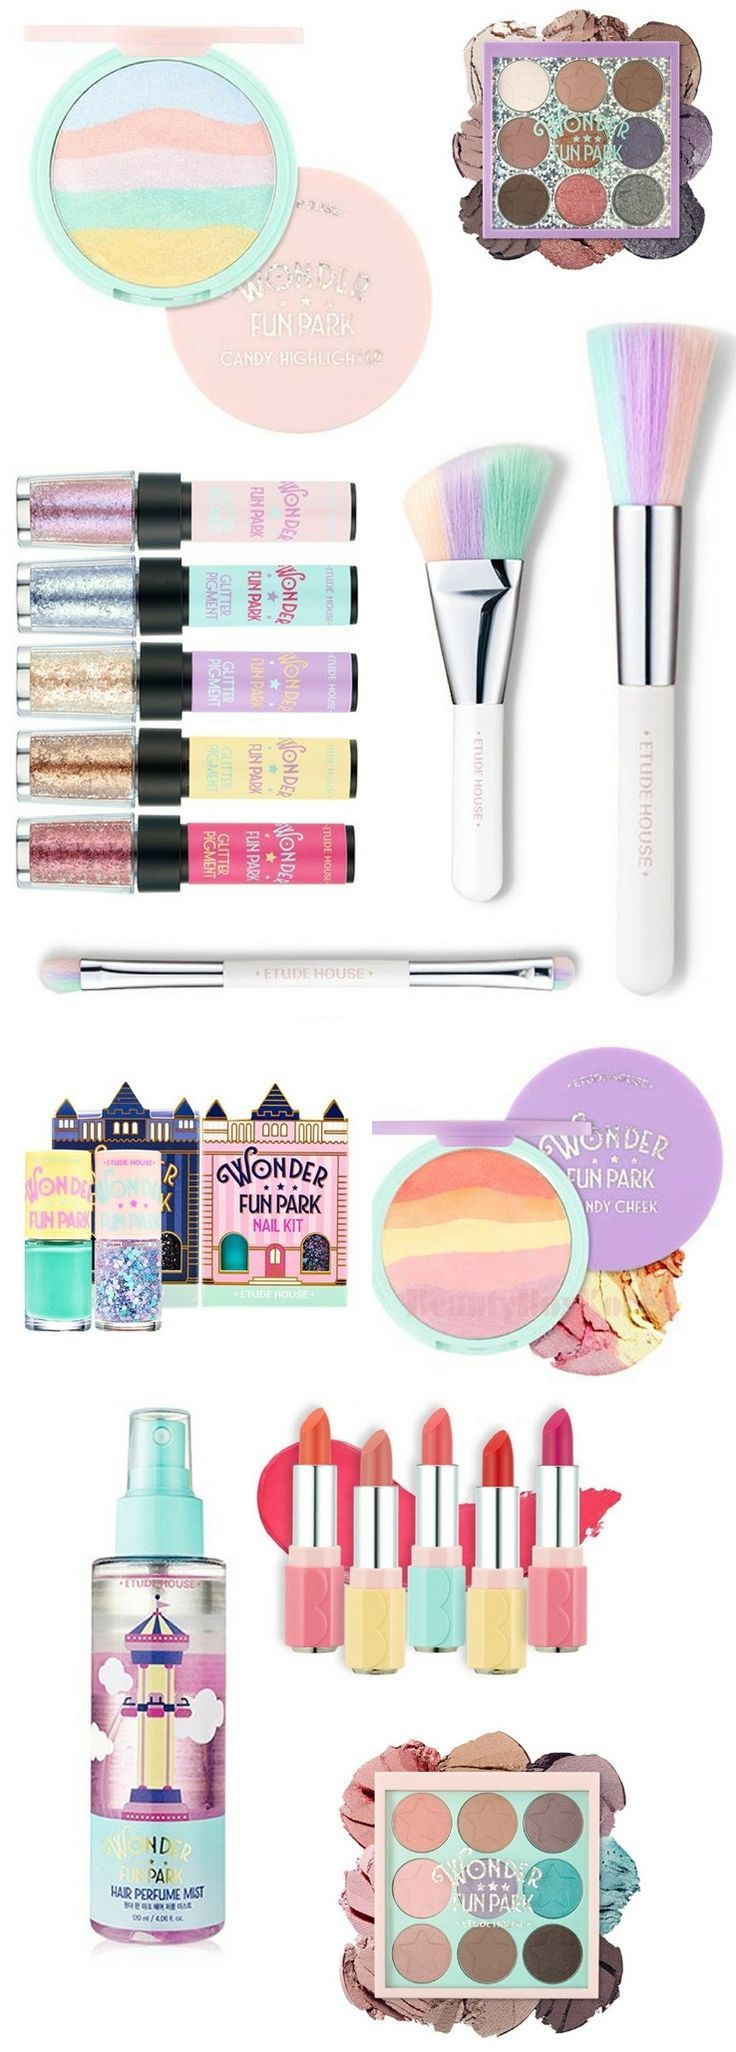 Etude House Wonder Fun House Captures The Magic of Tarte Make Believe in Yourself – Musings of a Muse